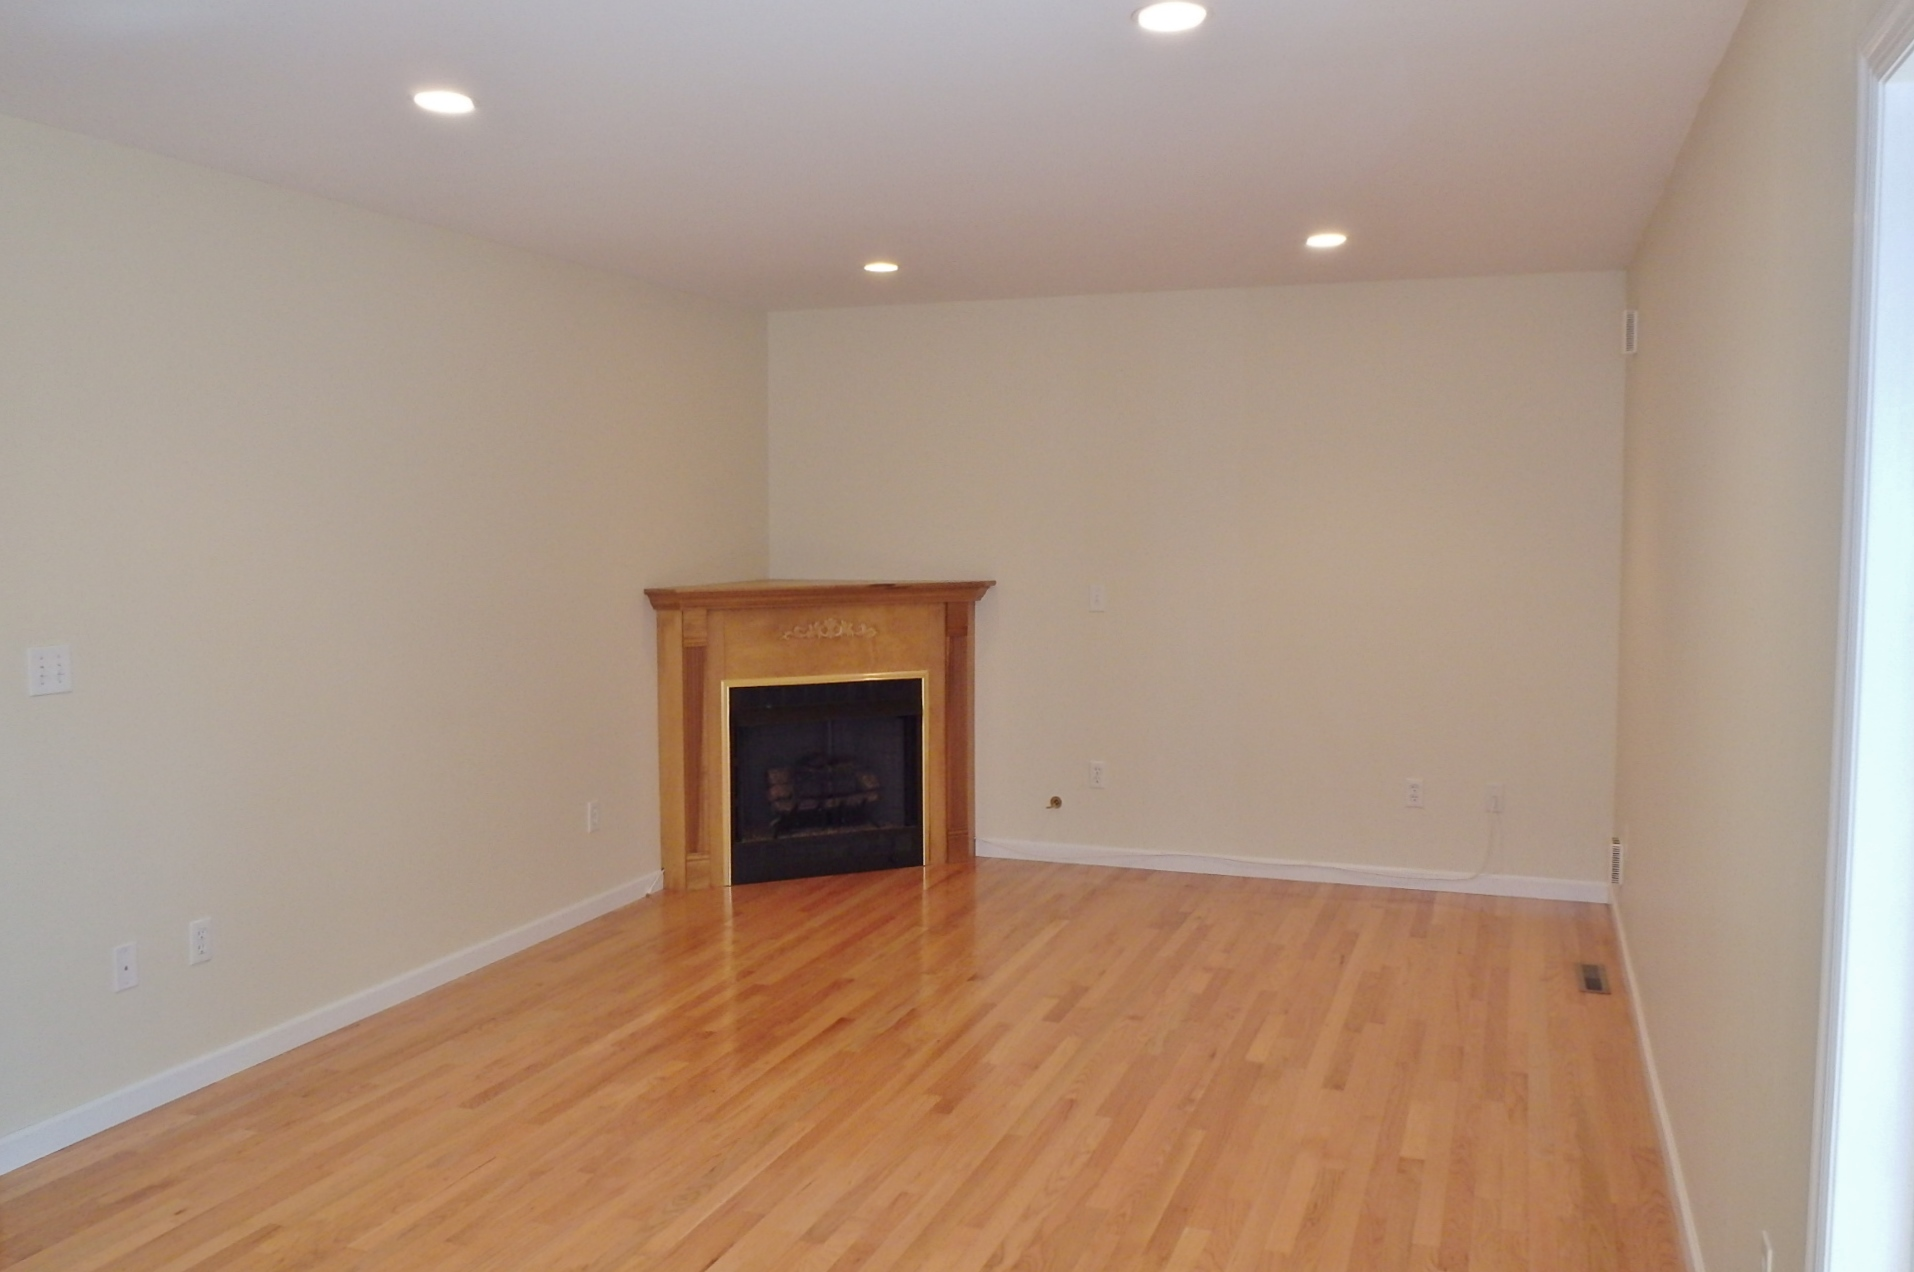 Living room picture, 120 Kenley Court.